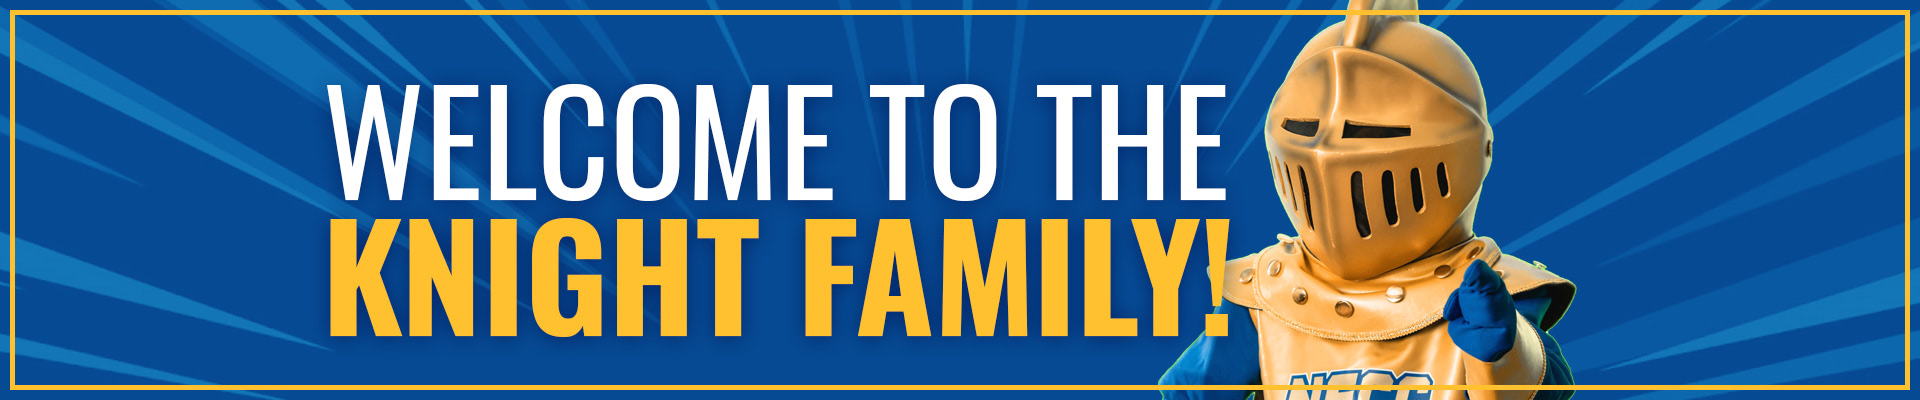 Welcome to the Knight family!